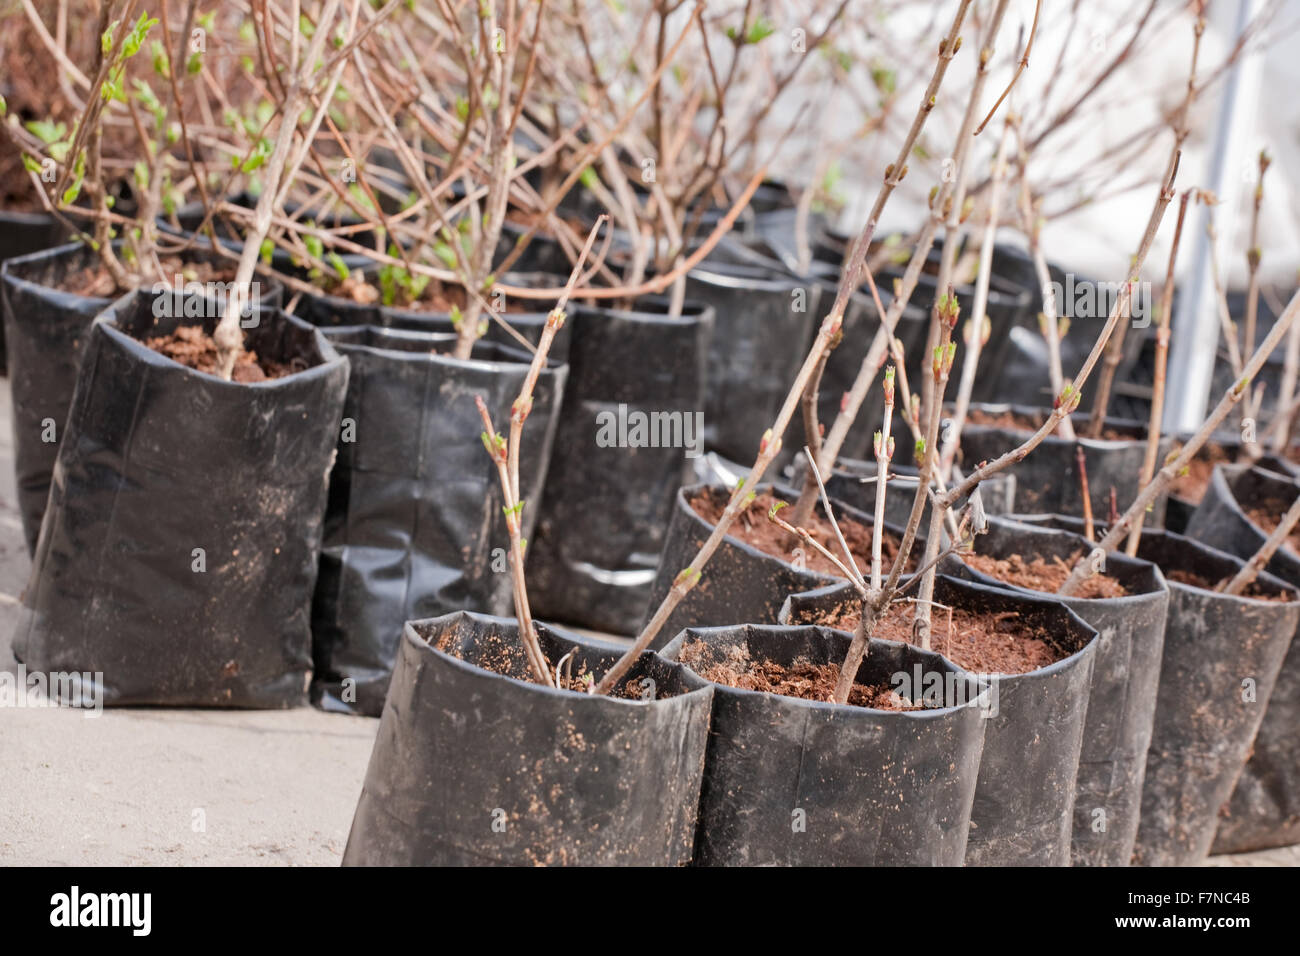 bargain sale of  trees and bushs outdoor - Stock Image